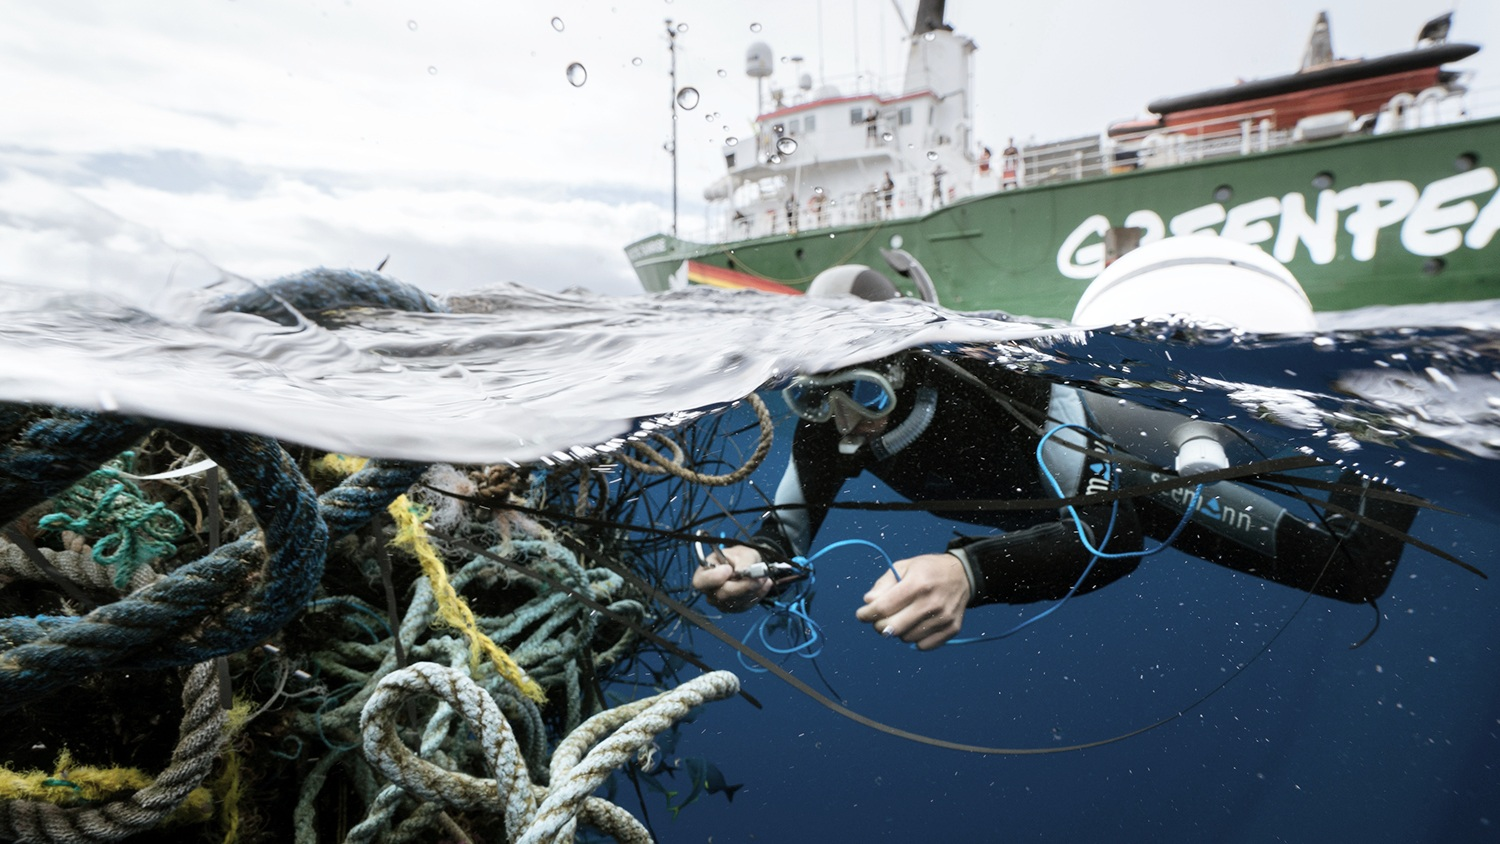 Greenpeace's Tavish Campbell attaches a GPS tracker to the ghost fishing gear in October 2018. © Justin Hofman / Greenpeace.